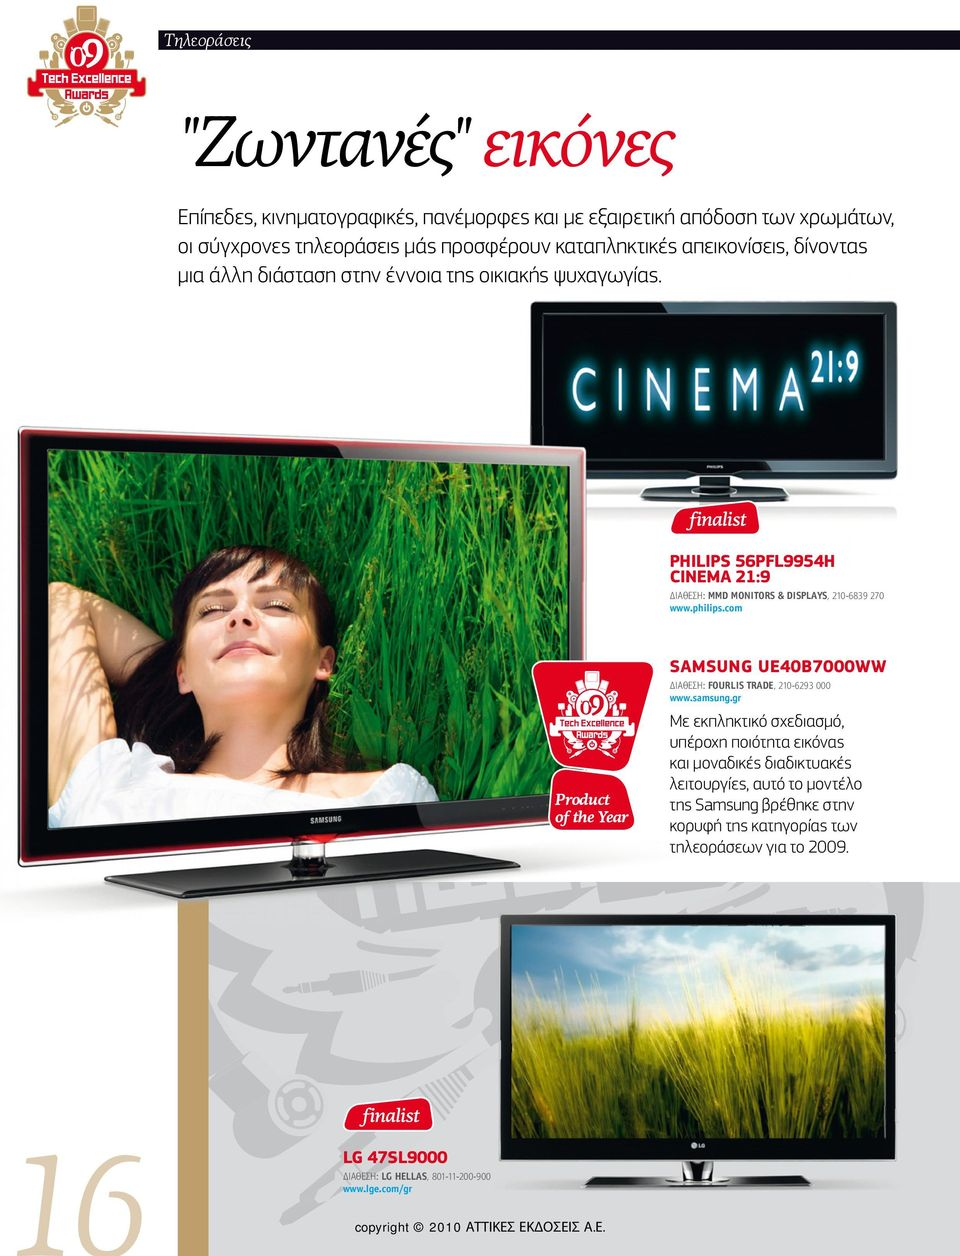 com SAMSUNG UE40B7000WW ΔΙΑΘΕΣΗ: FOURLIS TRADE, 210-6293 000 www.samsung.